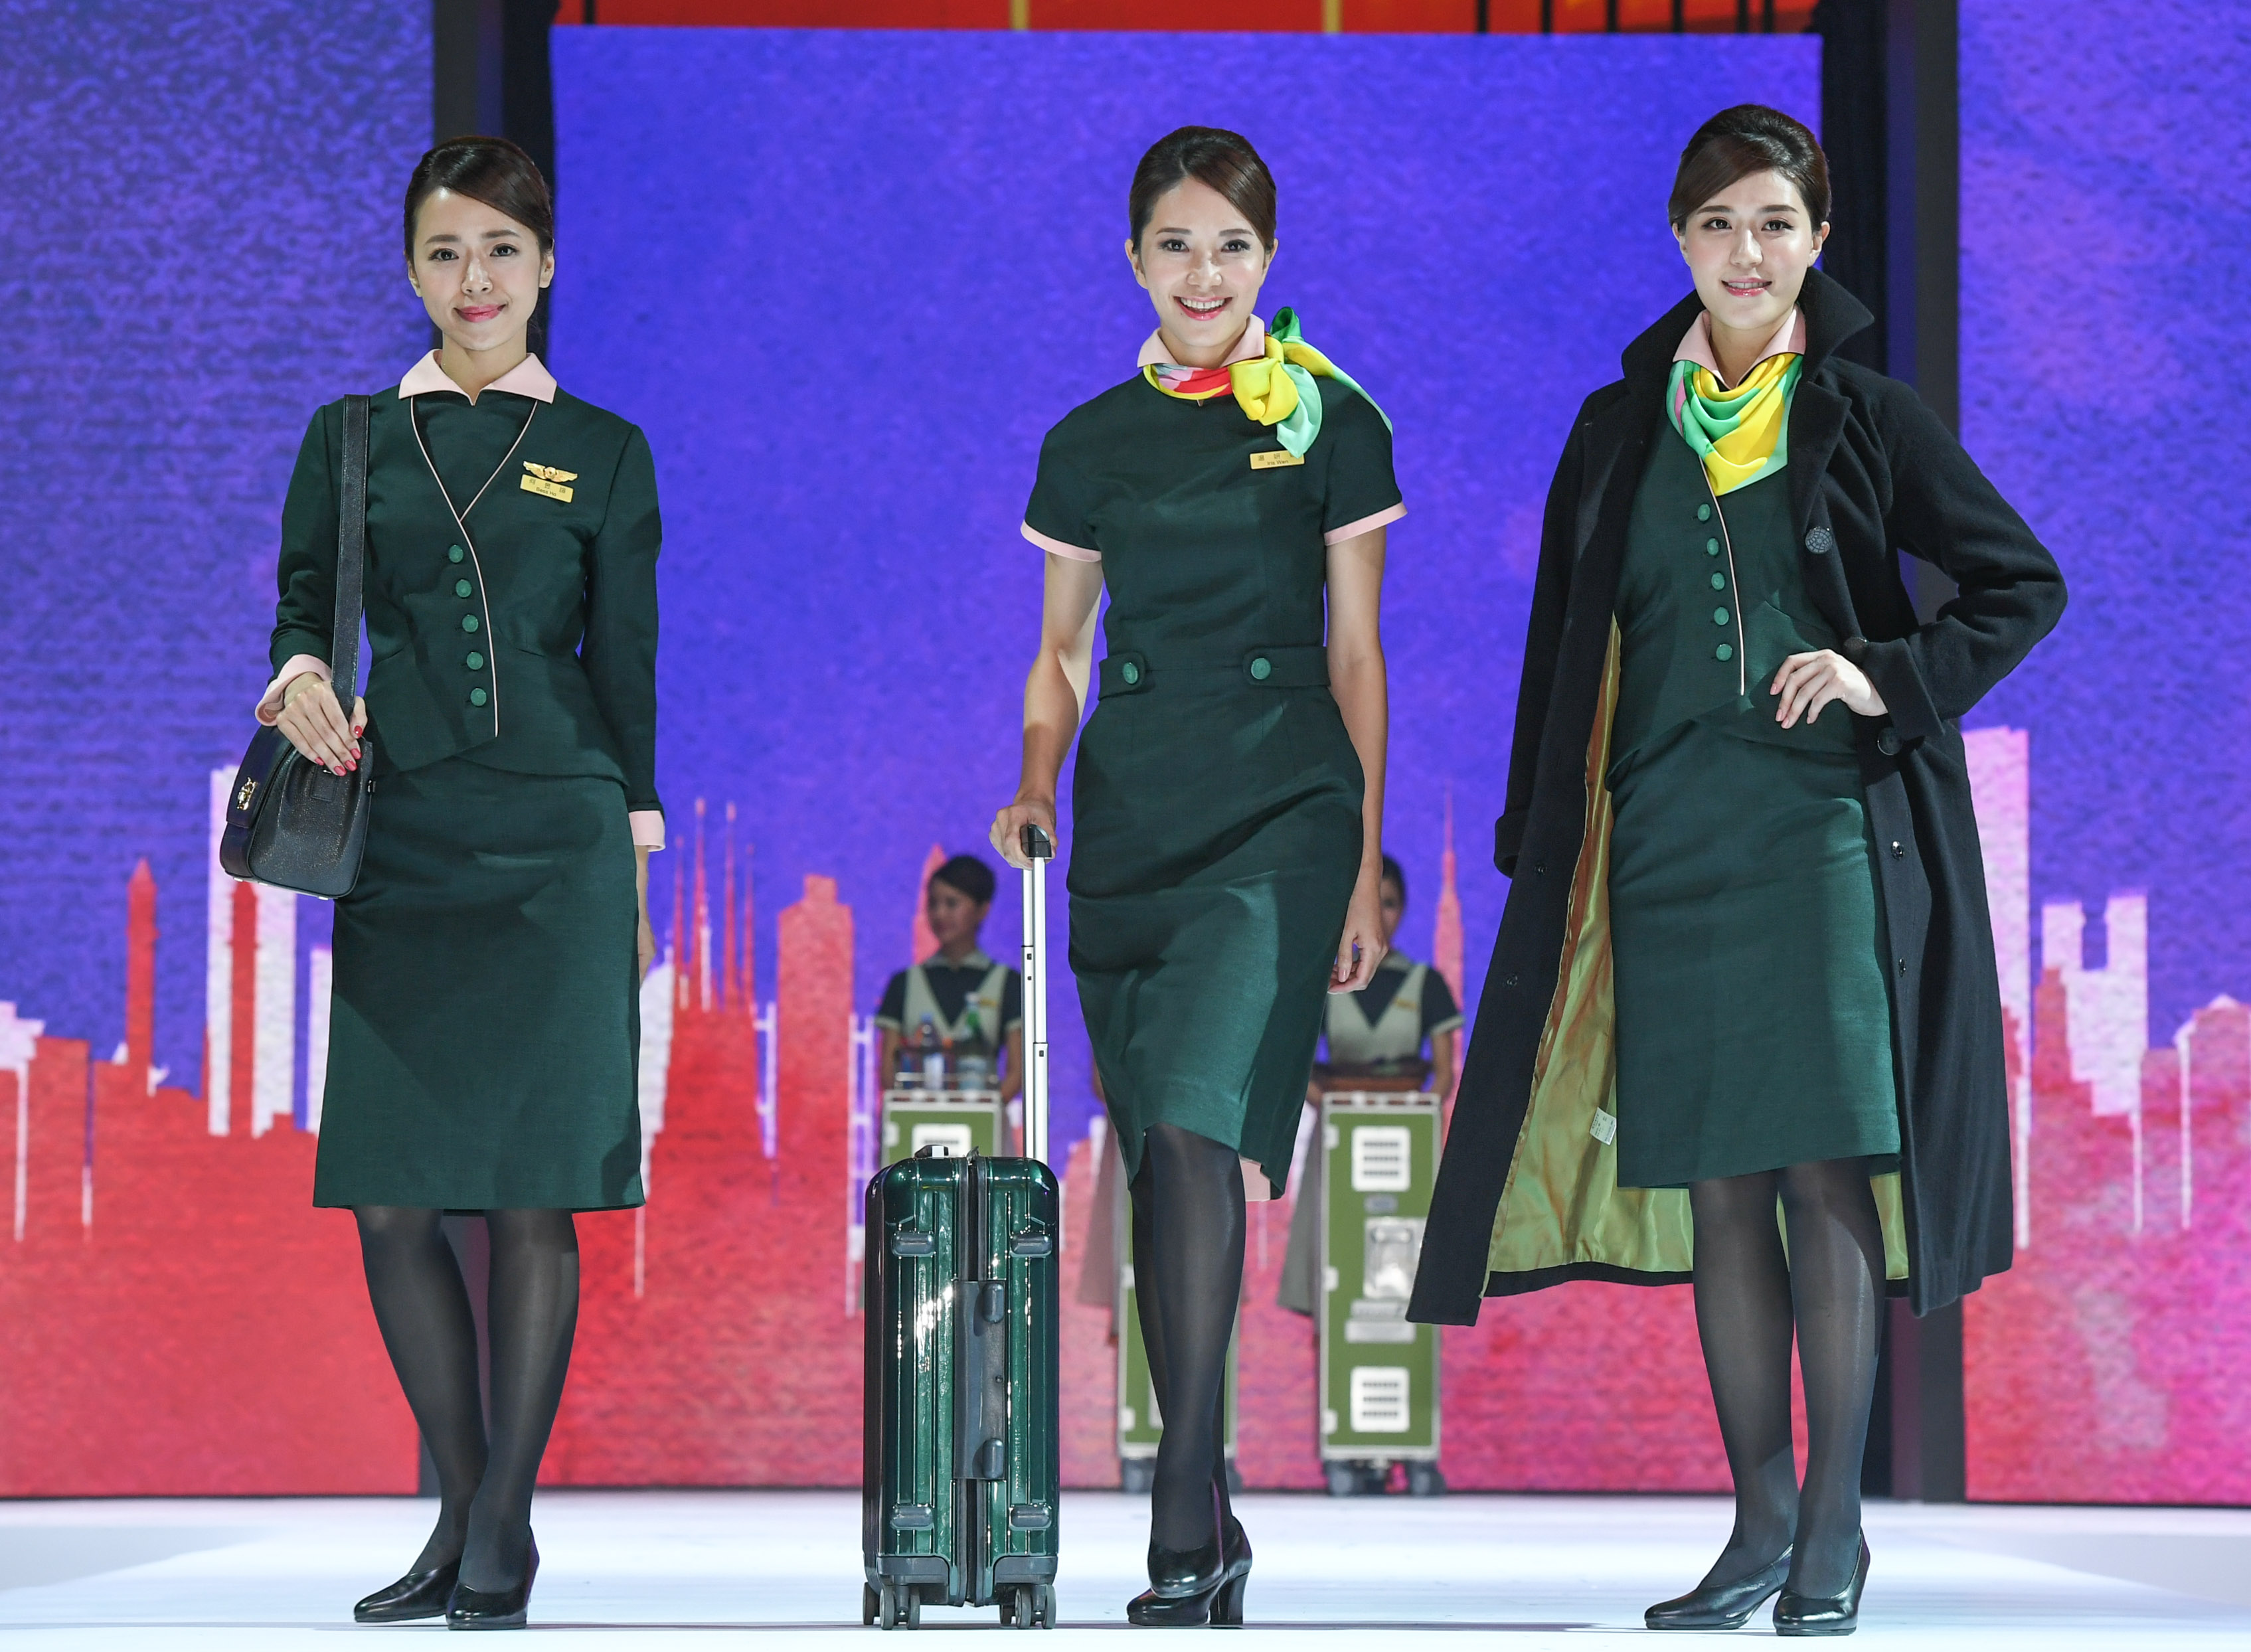 News: Eva Air retires Boeing 747-400 after 25 years of service